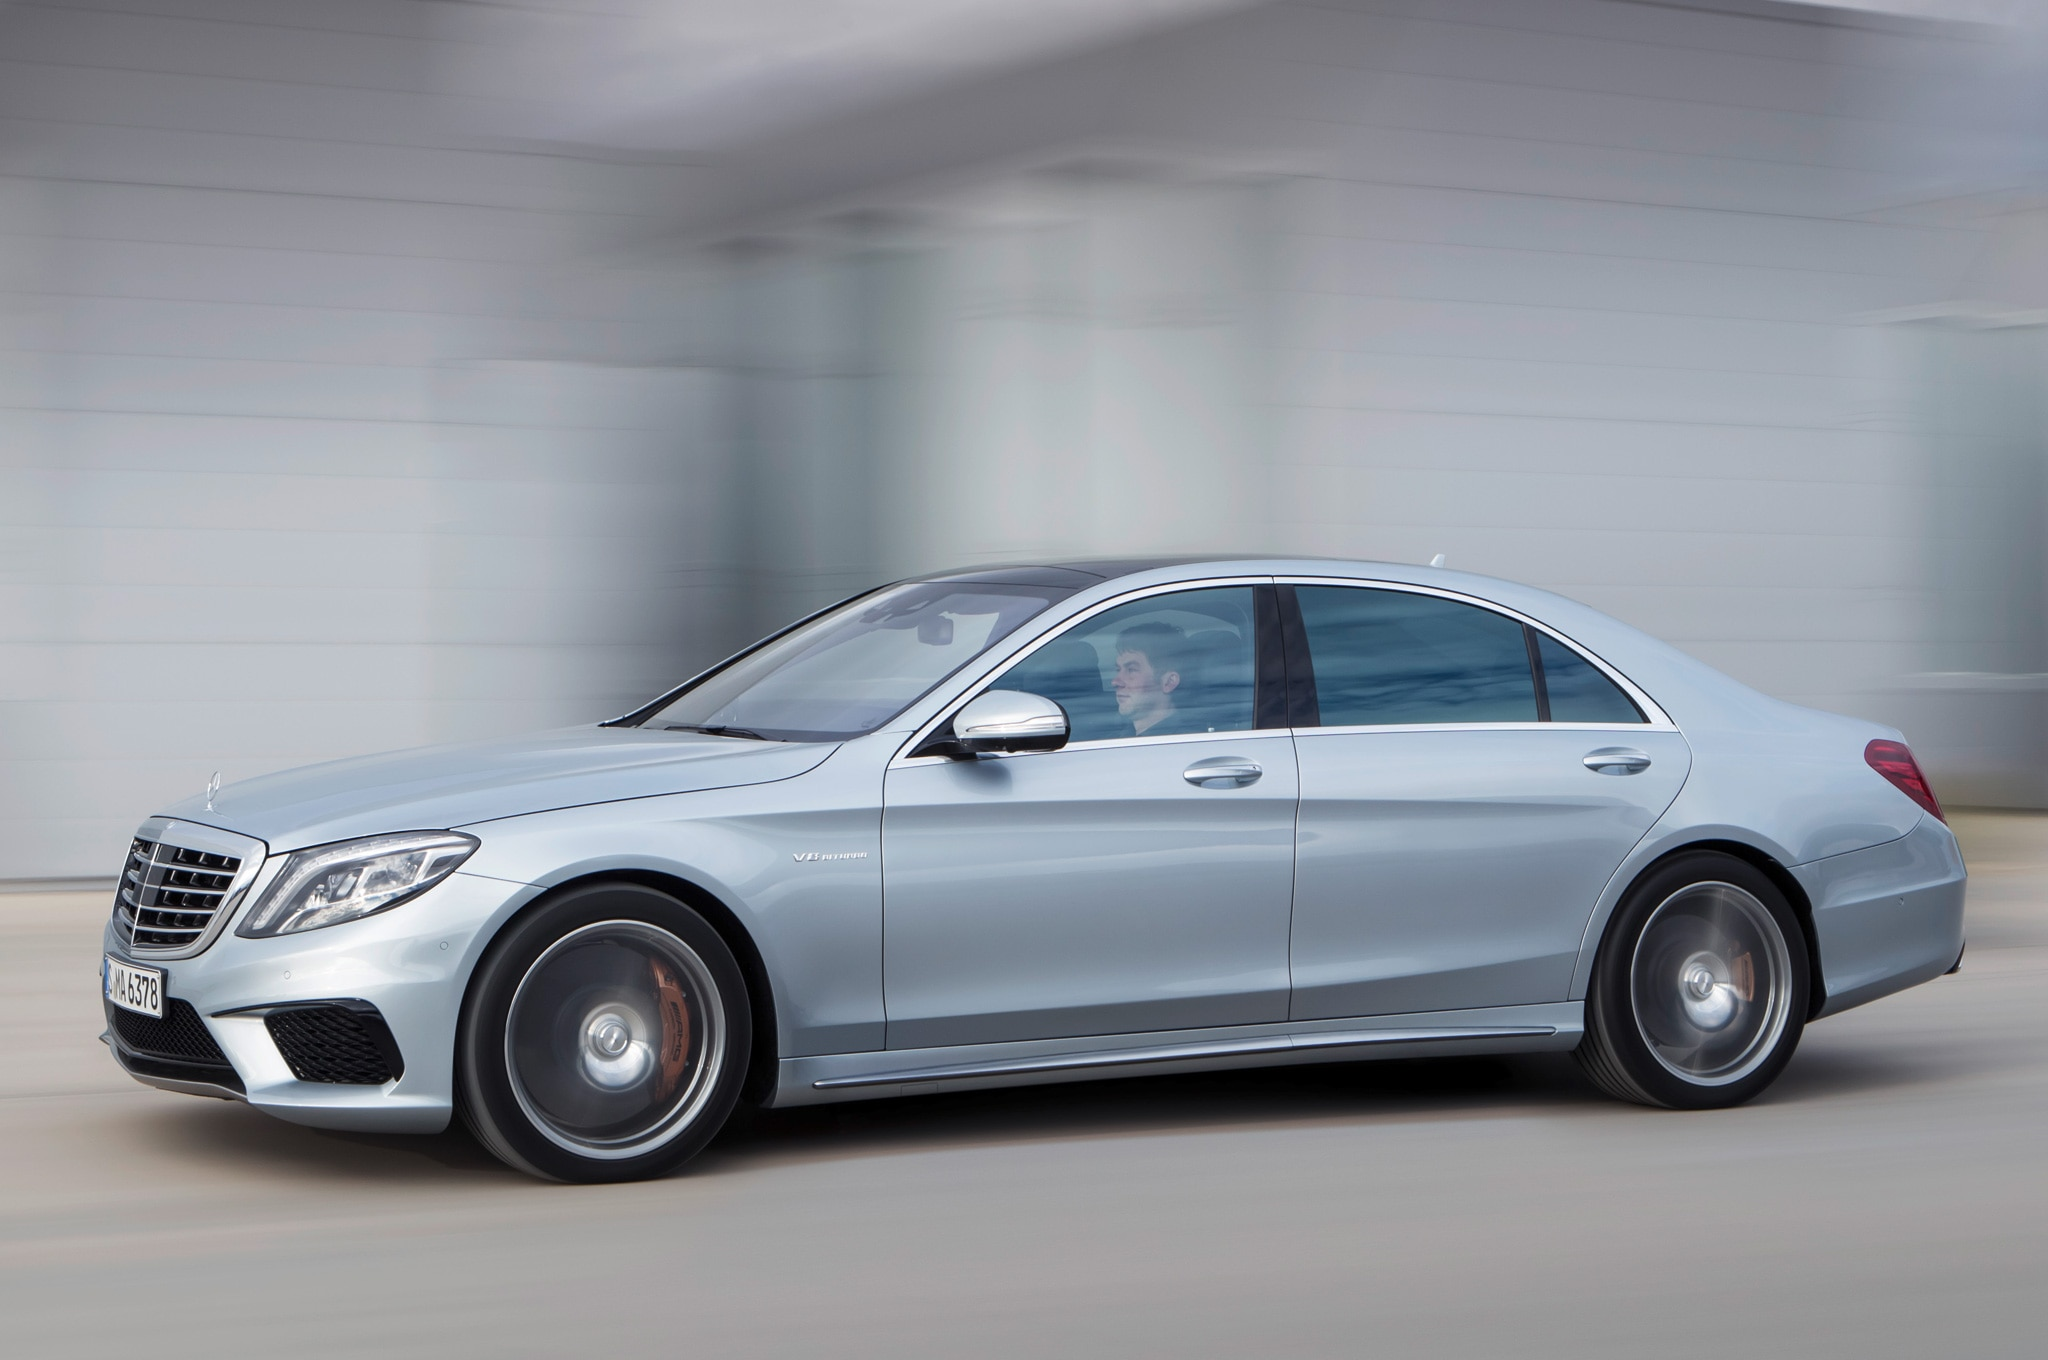 2014 mercedes benz s63 amg 4matic revealed for Mercedes benz s63 amg 2014